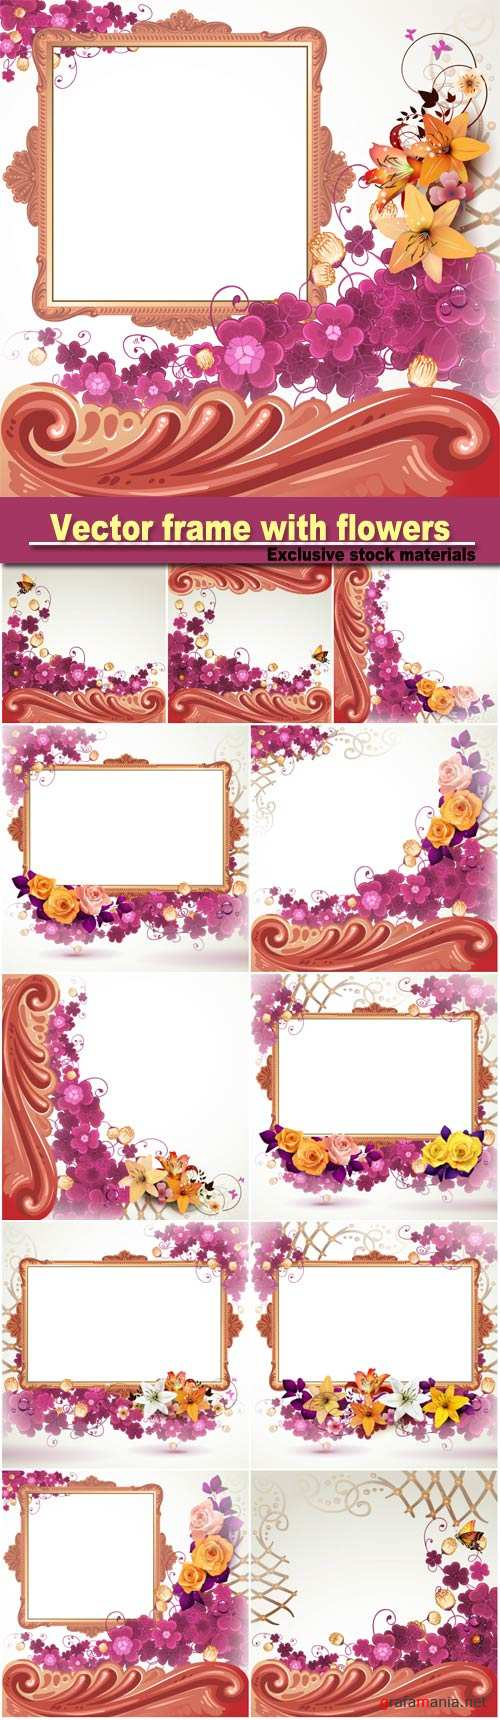 Vector frame with flowers, roses and lilies